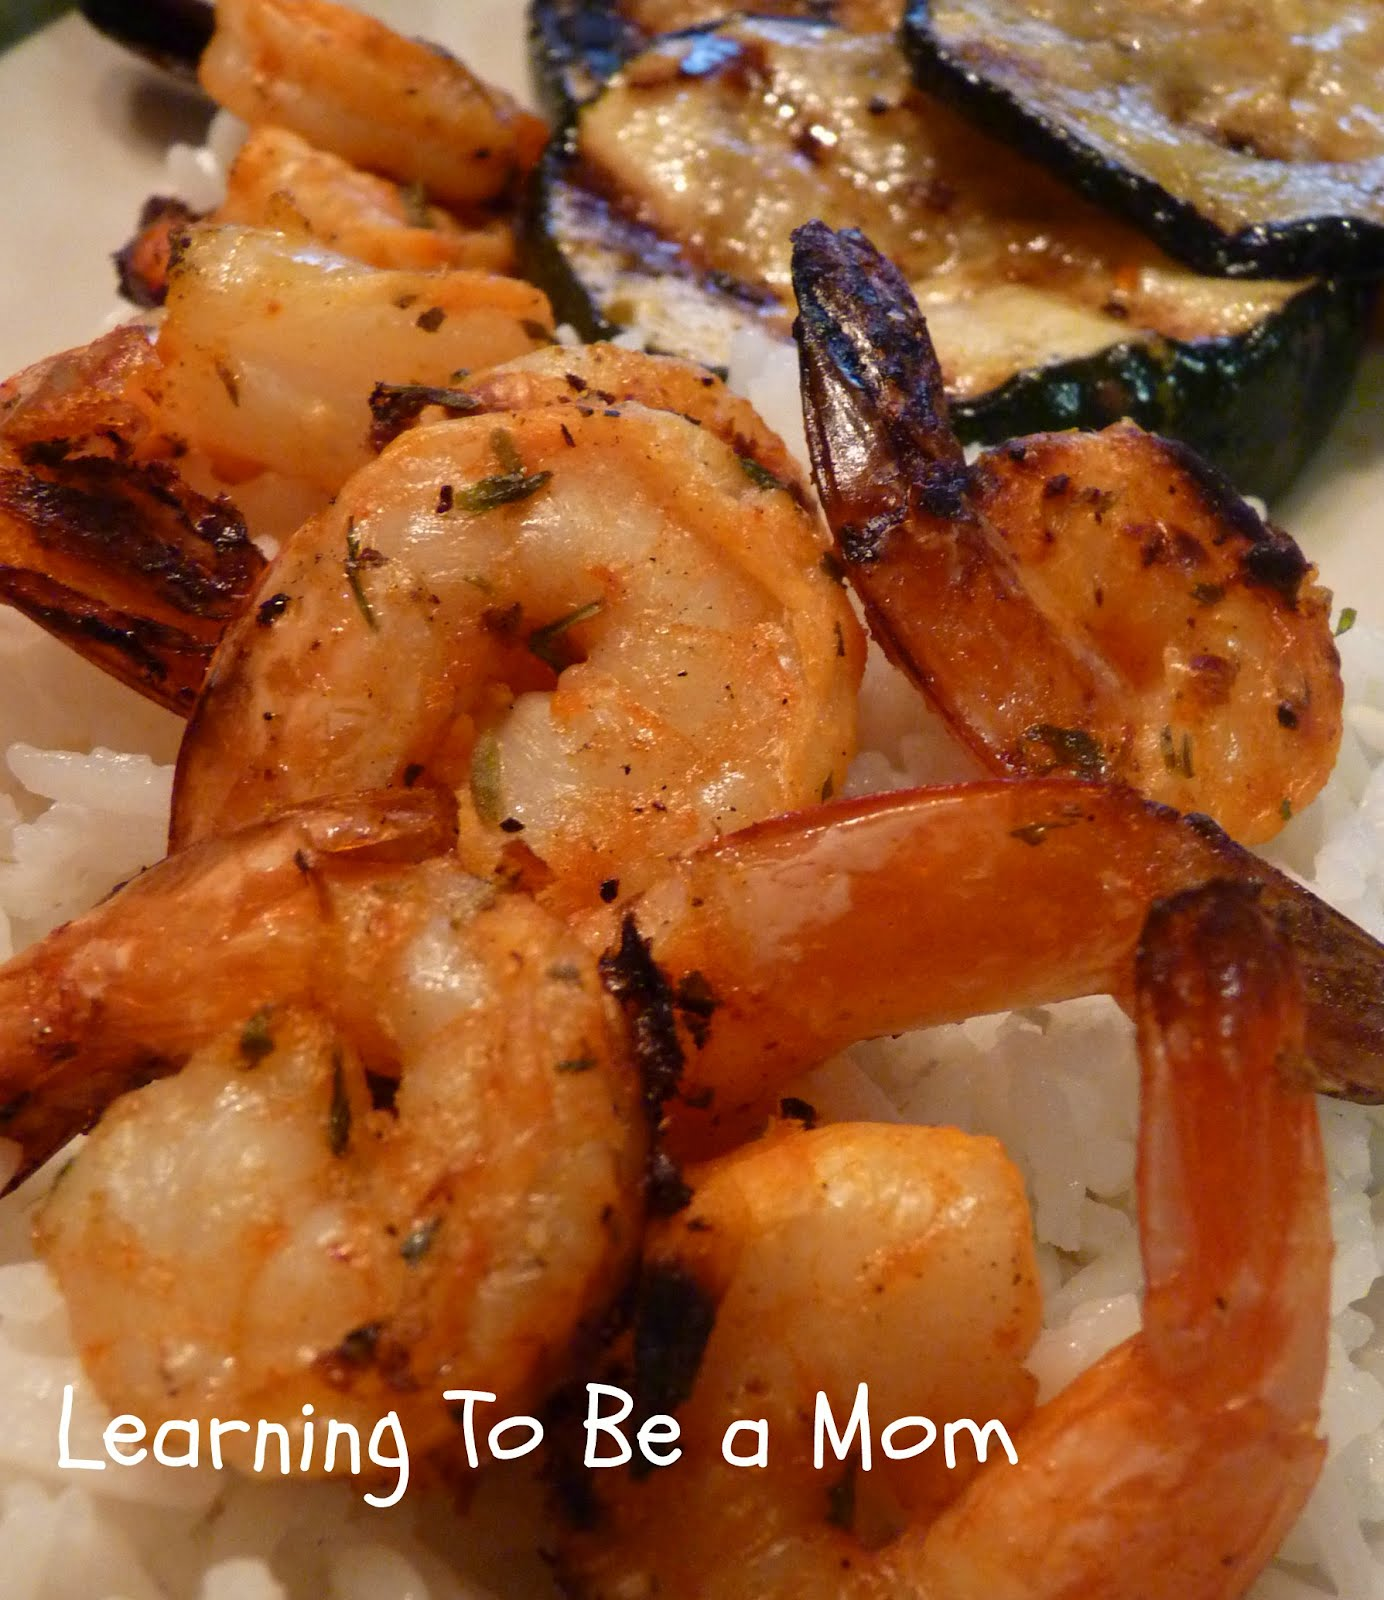 Learning To Be a Mom: Marinated Grilled Shrimp